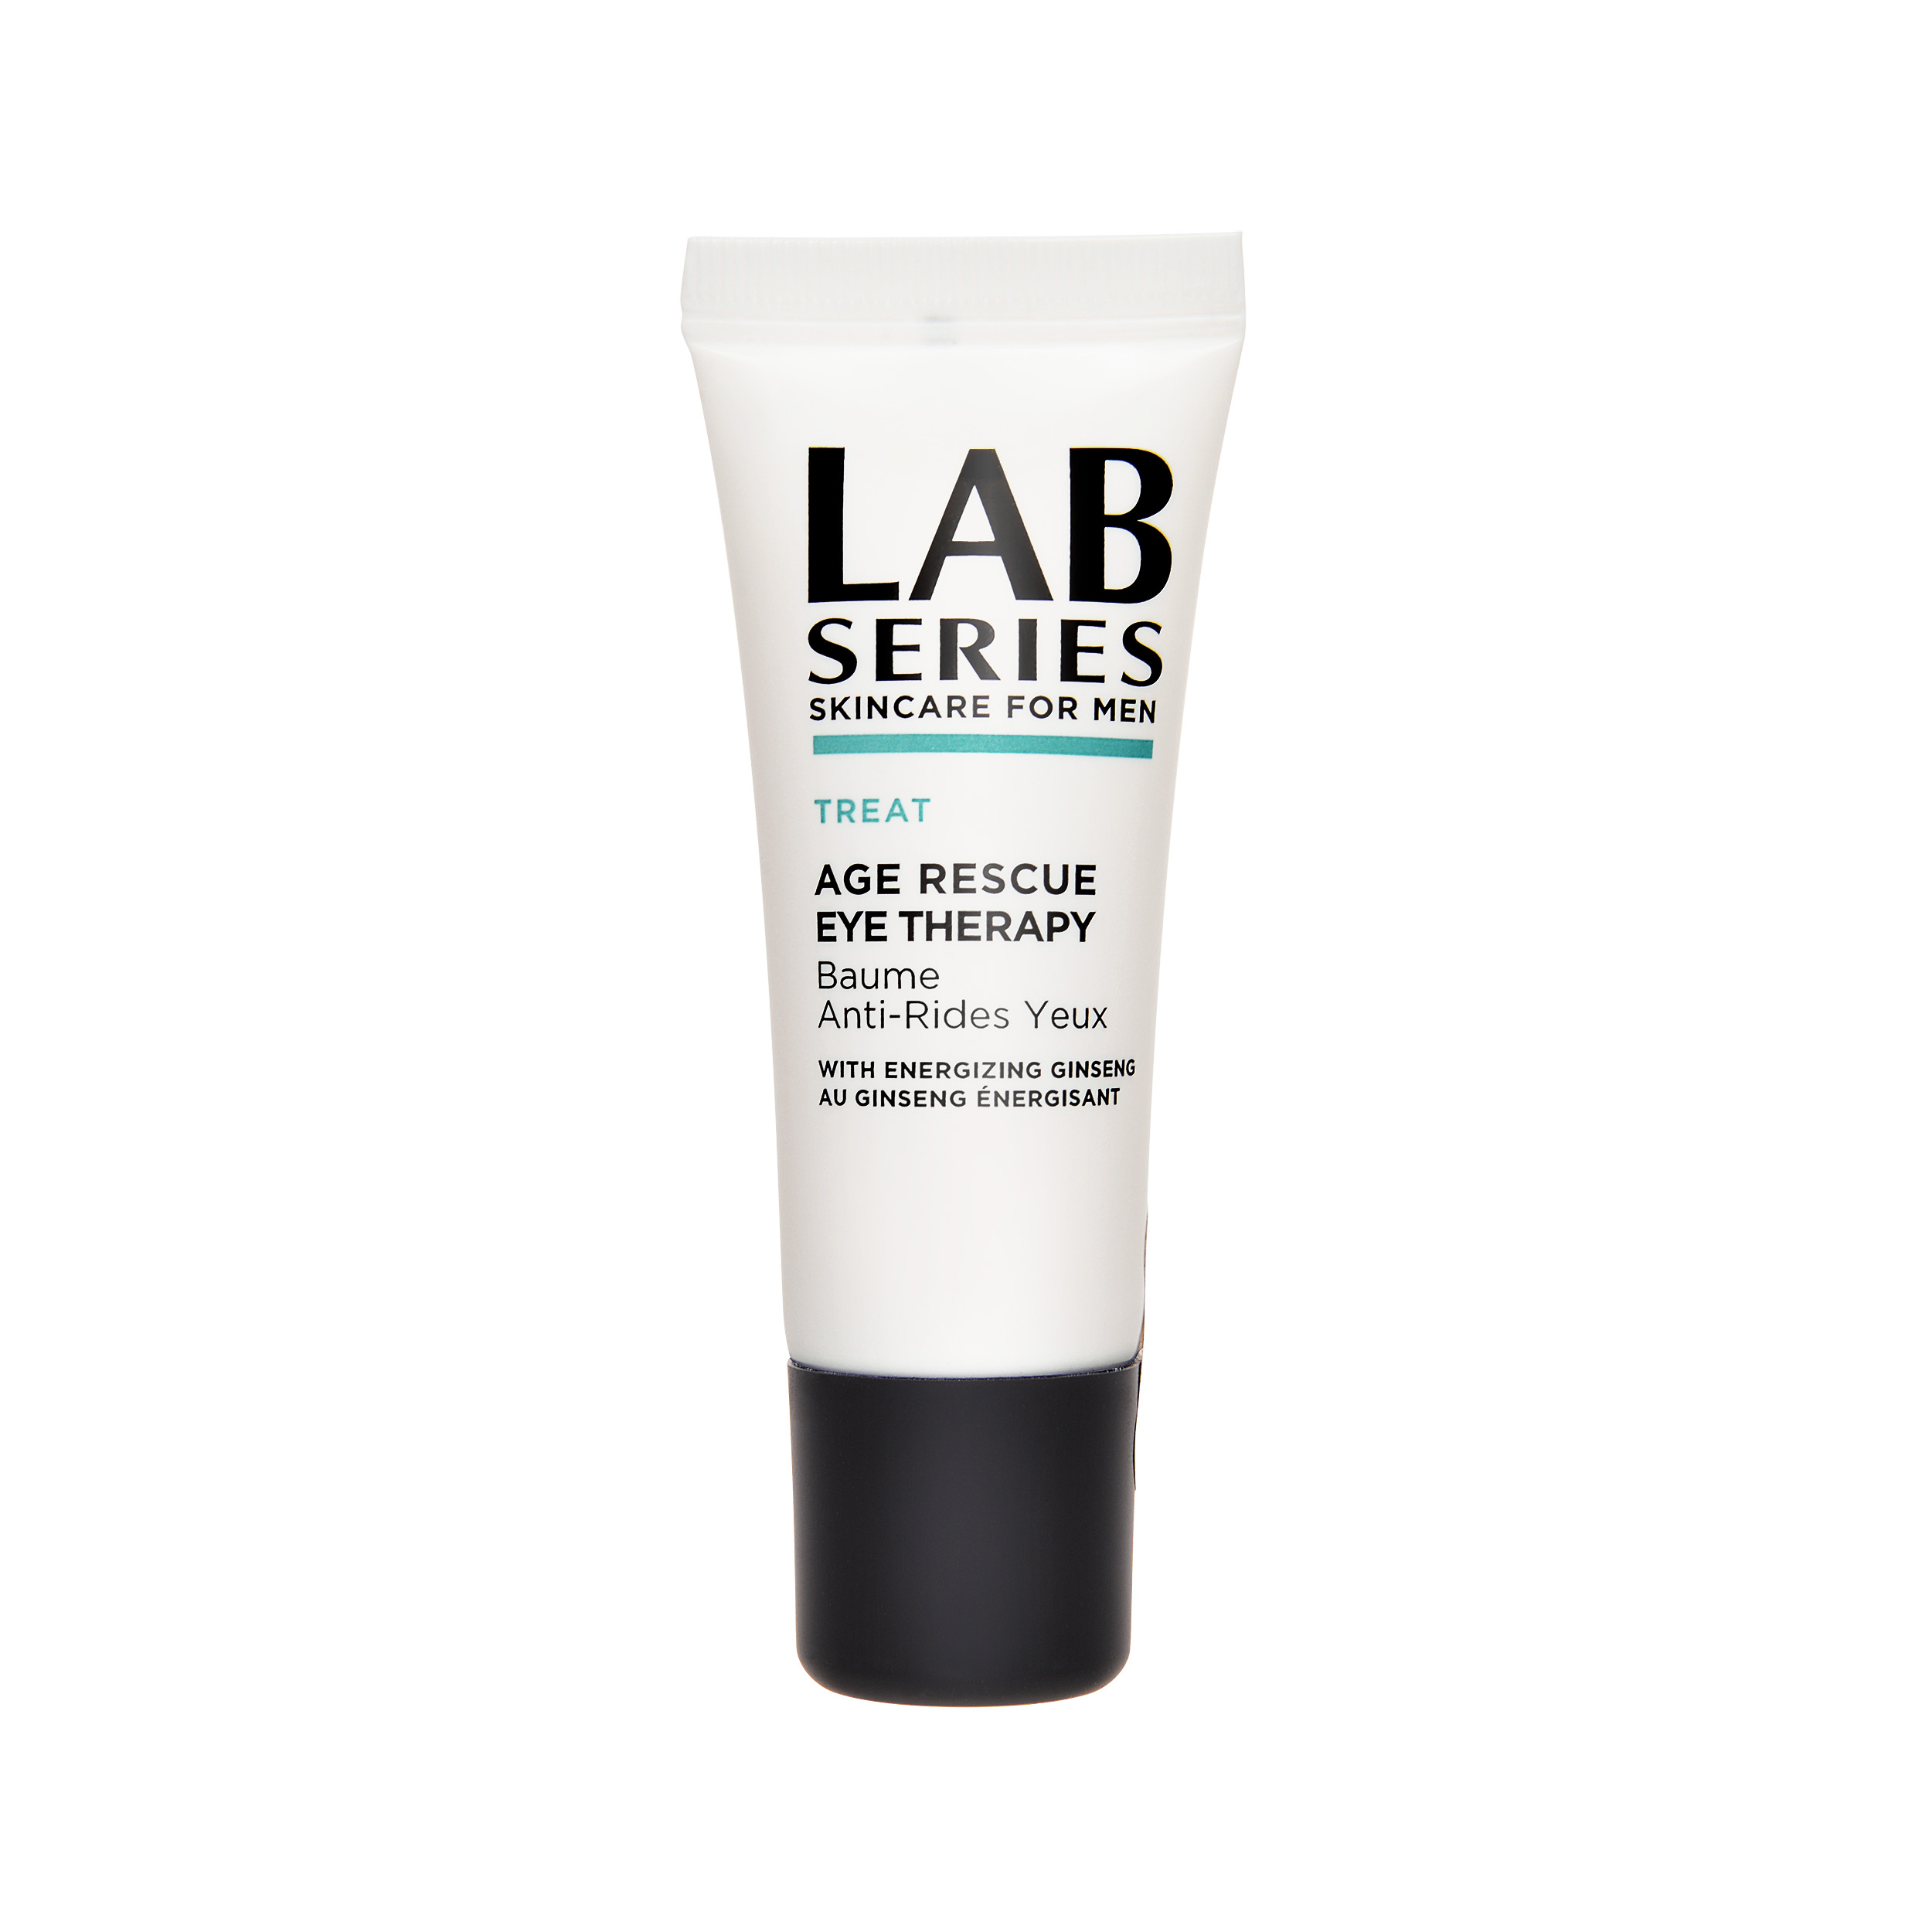 Lab Series For Men Age Rescue+  Eye Therapy (For Normal, Dry or Oily Skin Types) 0.5oz, 15ml from Cosme-De.com